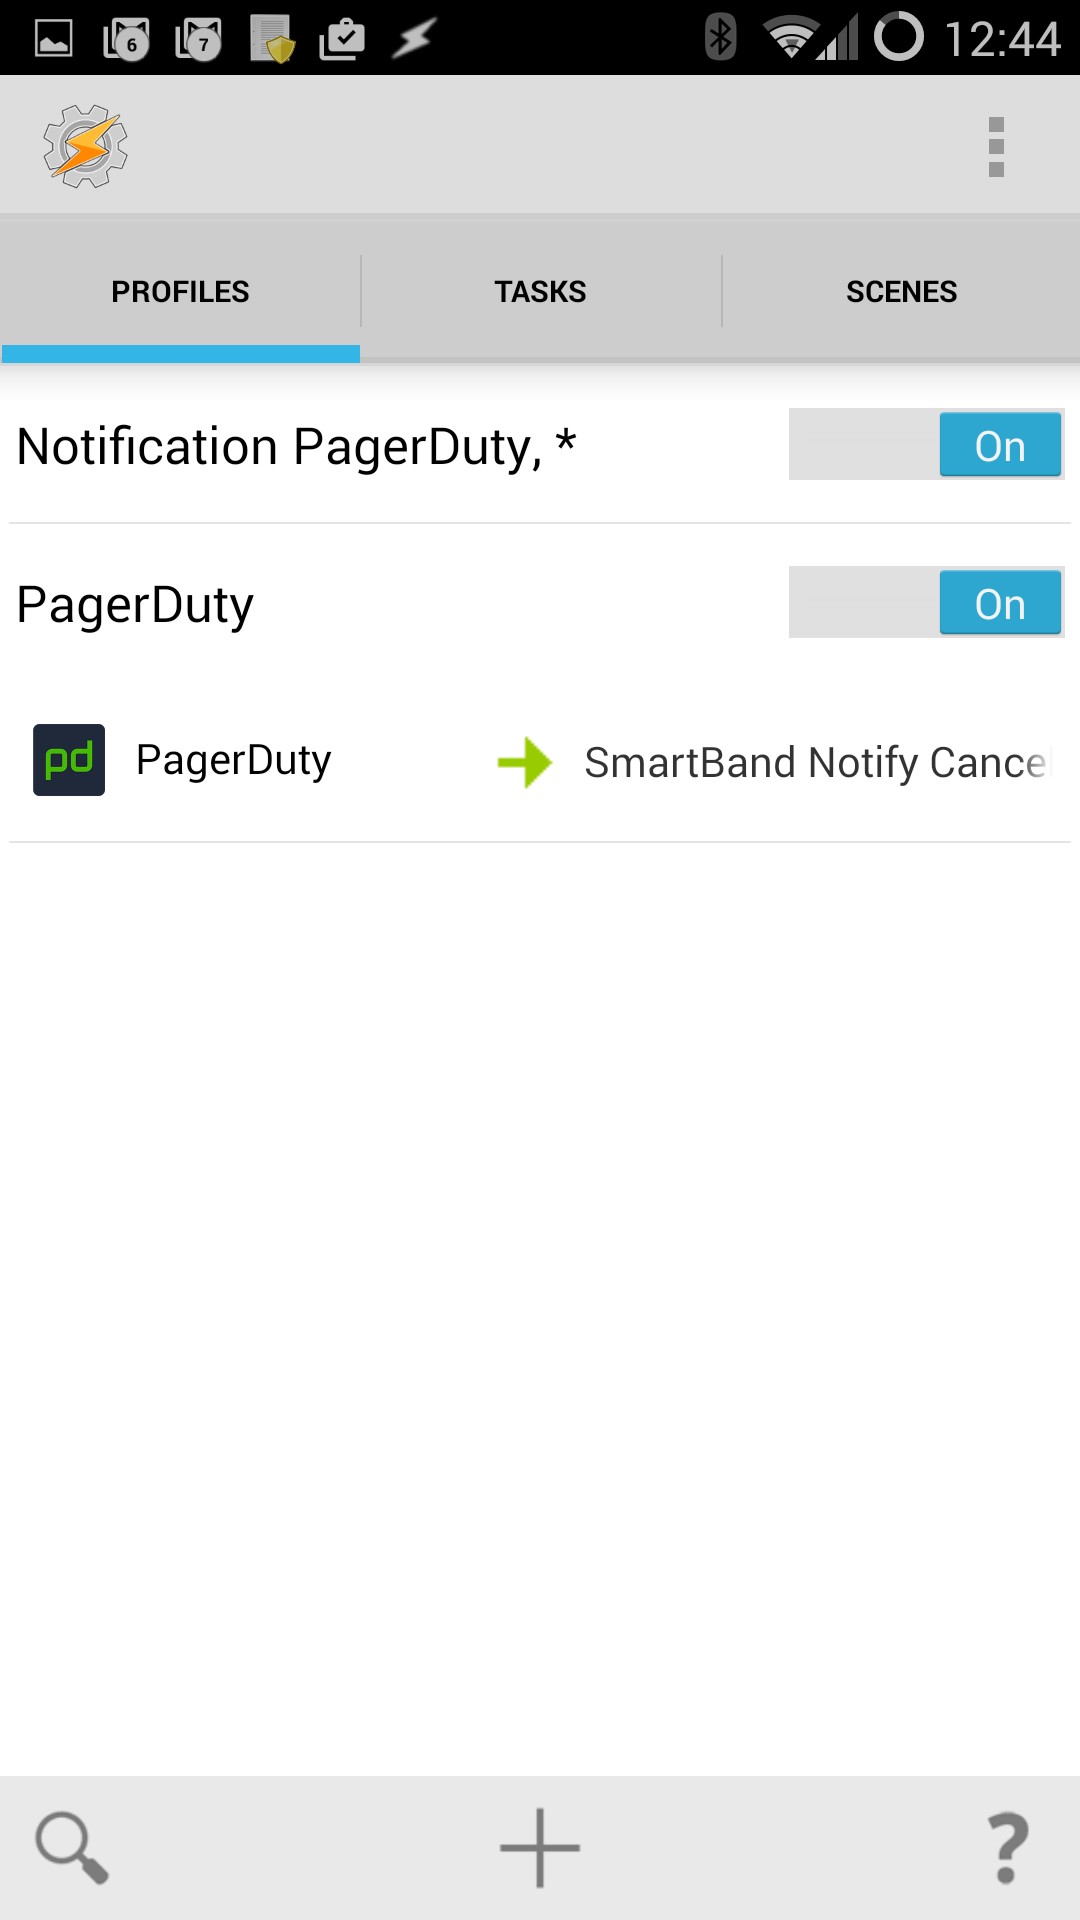 Stop buzzing the smartband when I open the pagerduty app